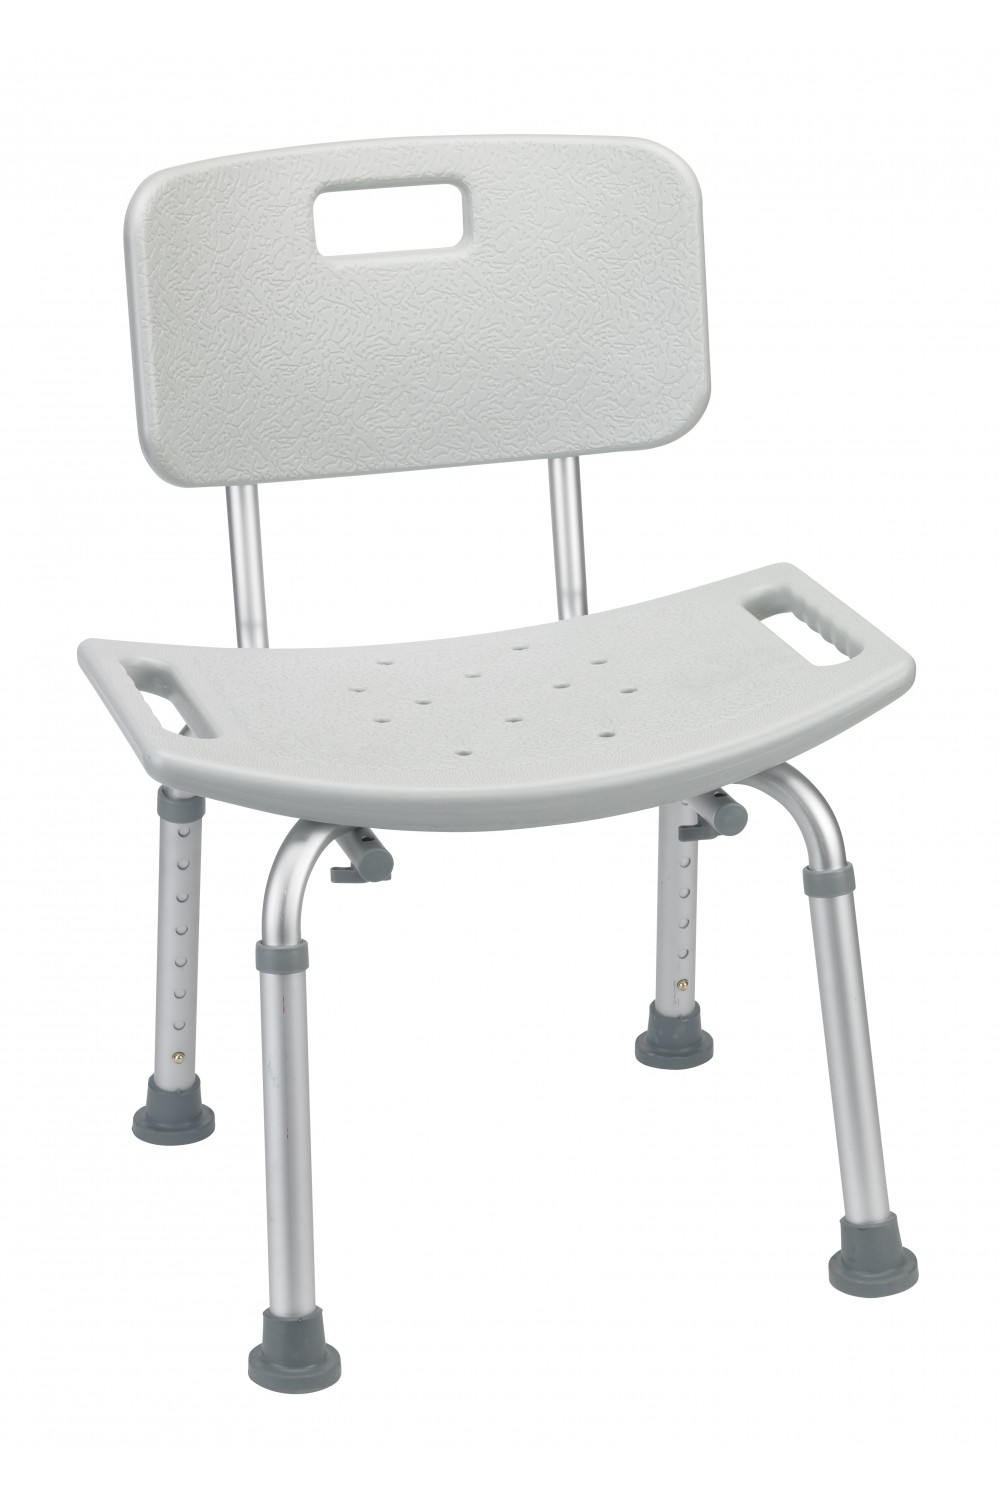 Grey Bathroom Safety Shower Tub Bench Chair With Back Gba Medical